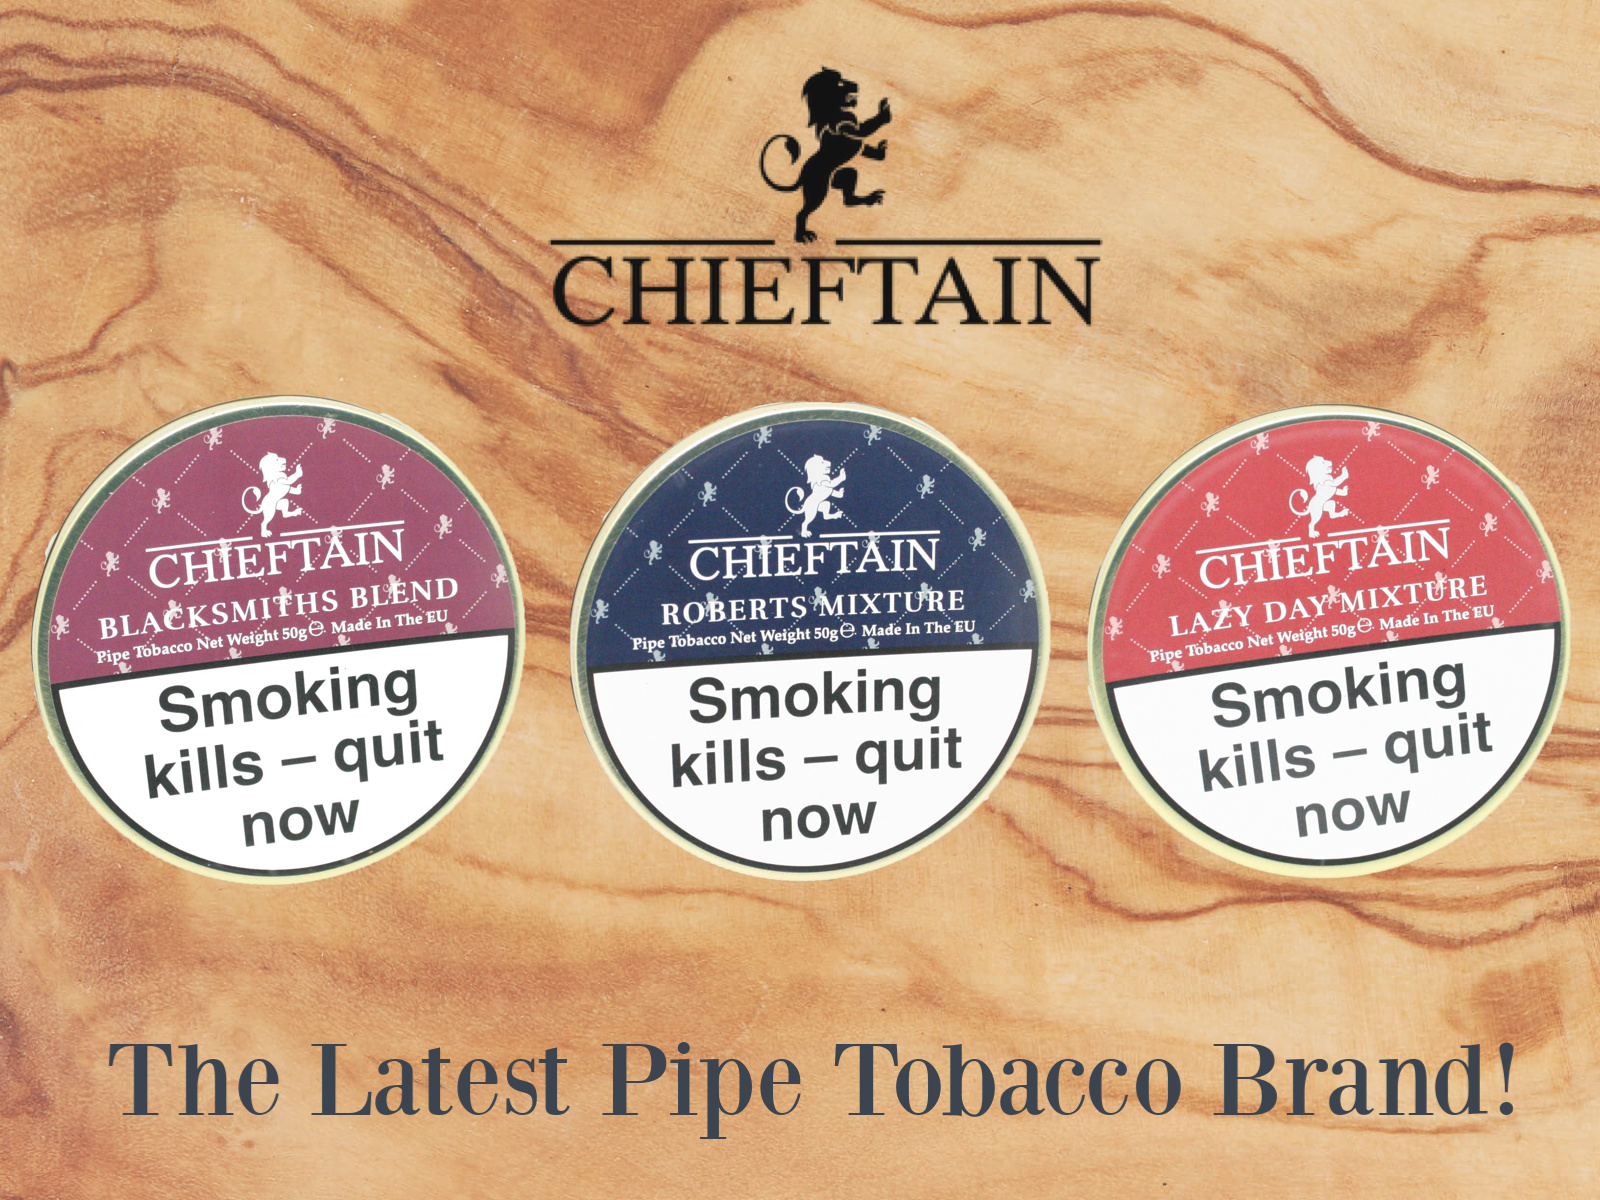 chieftian-pipe-tobacco-advert.jpg